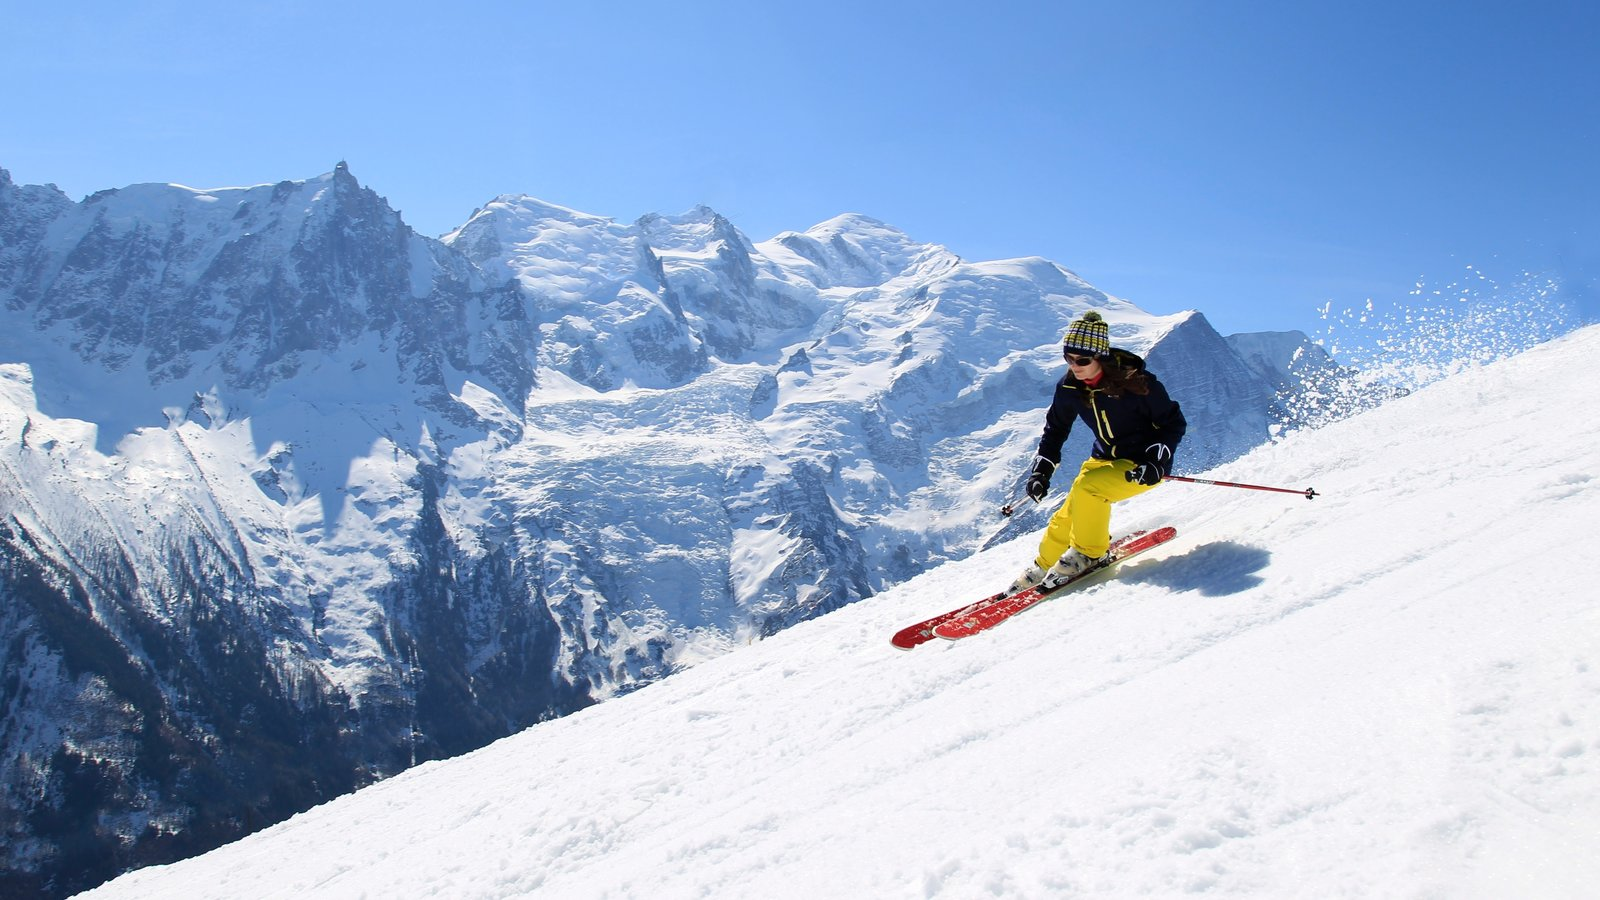 Alpes du nord pictures view photos images of alpes du nord - Chamonix mont blanc office du tourisme ...